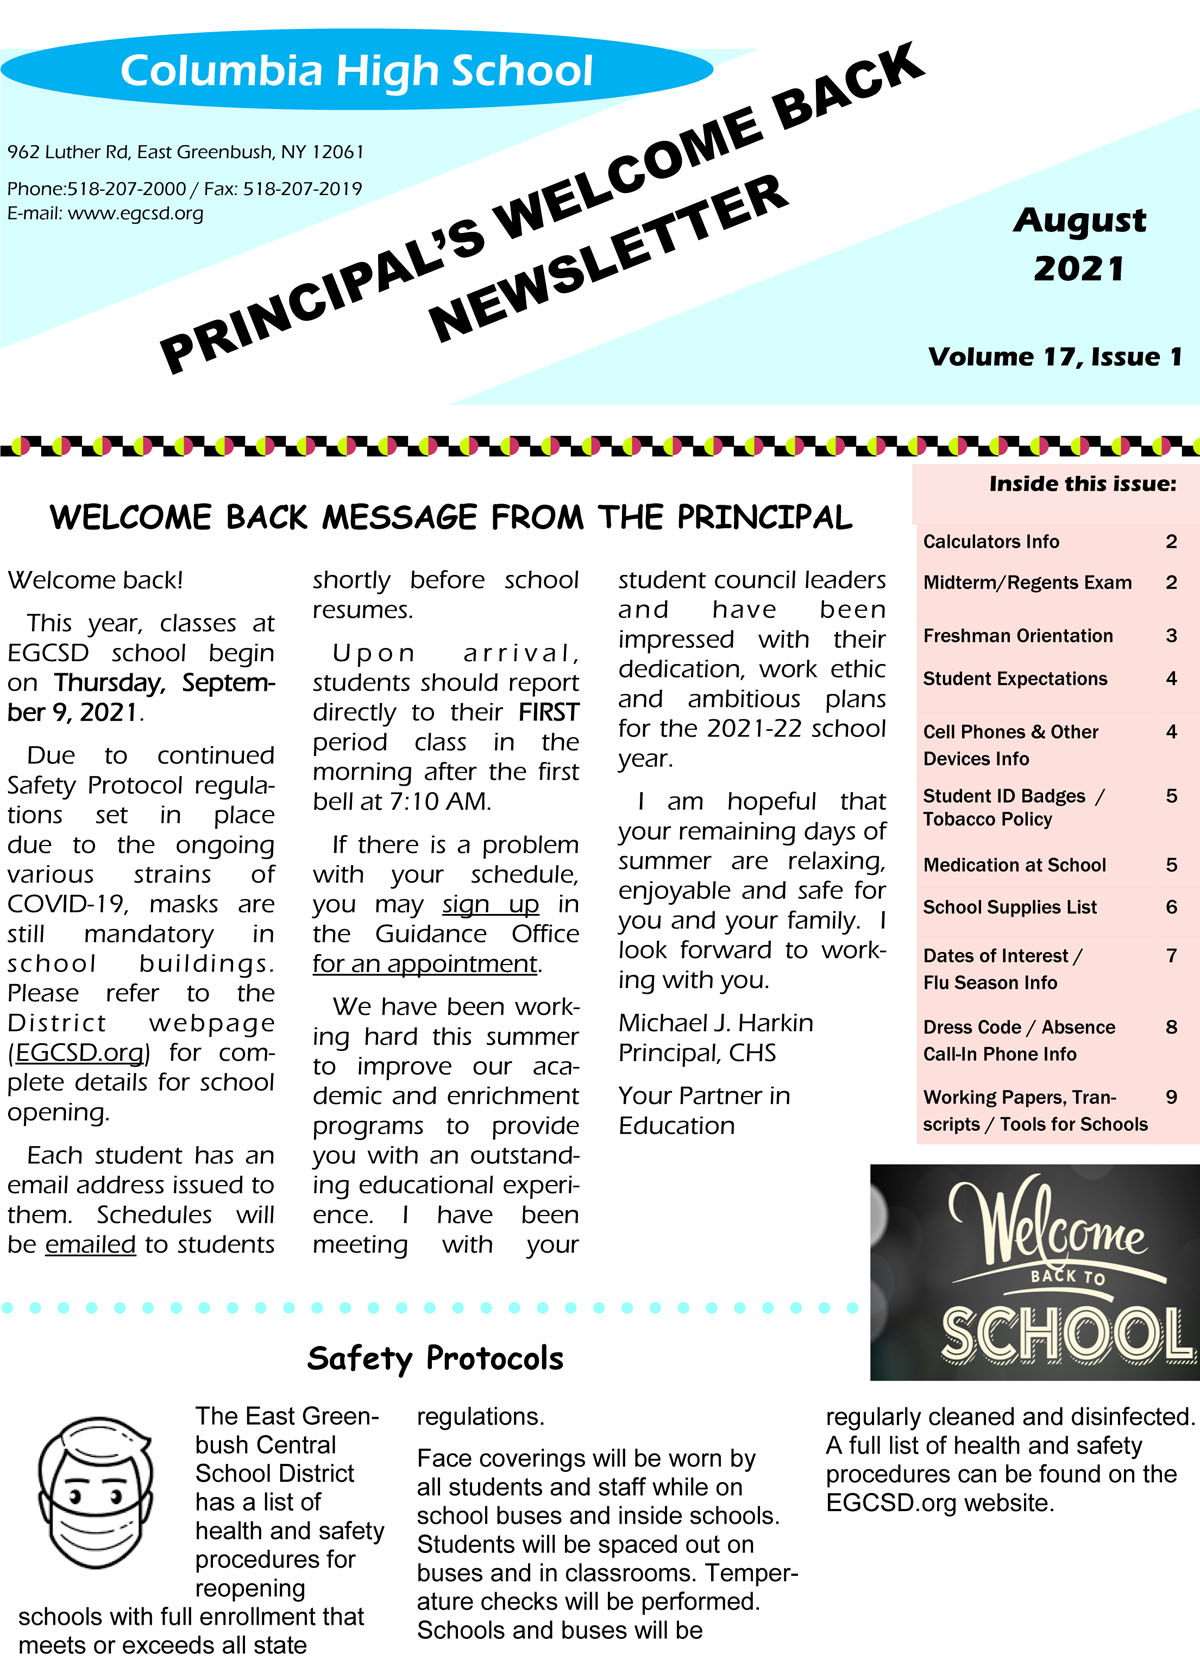 Columbia Back to School Newsletter cover